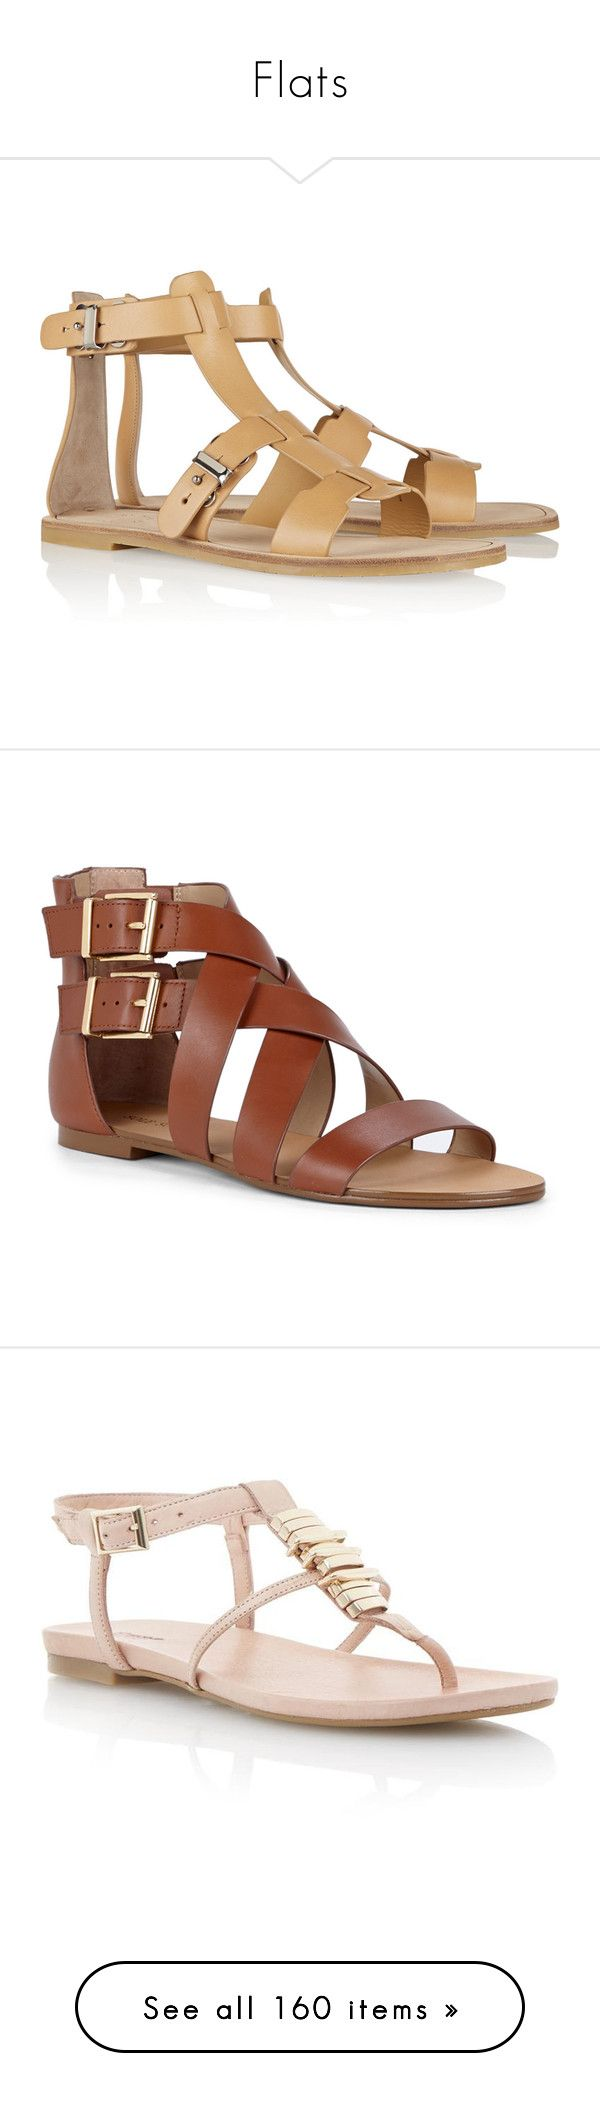 """""""Flats"""" by girlwithherheadintheclouds ❤ liked on Polyvore featuring shoes, sandals, flats, gladiator sandals, leather gladiator sandals, leather flats, gladiator flats sandals, tan flats, equestrian tan and gladiator sandals shoes"""